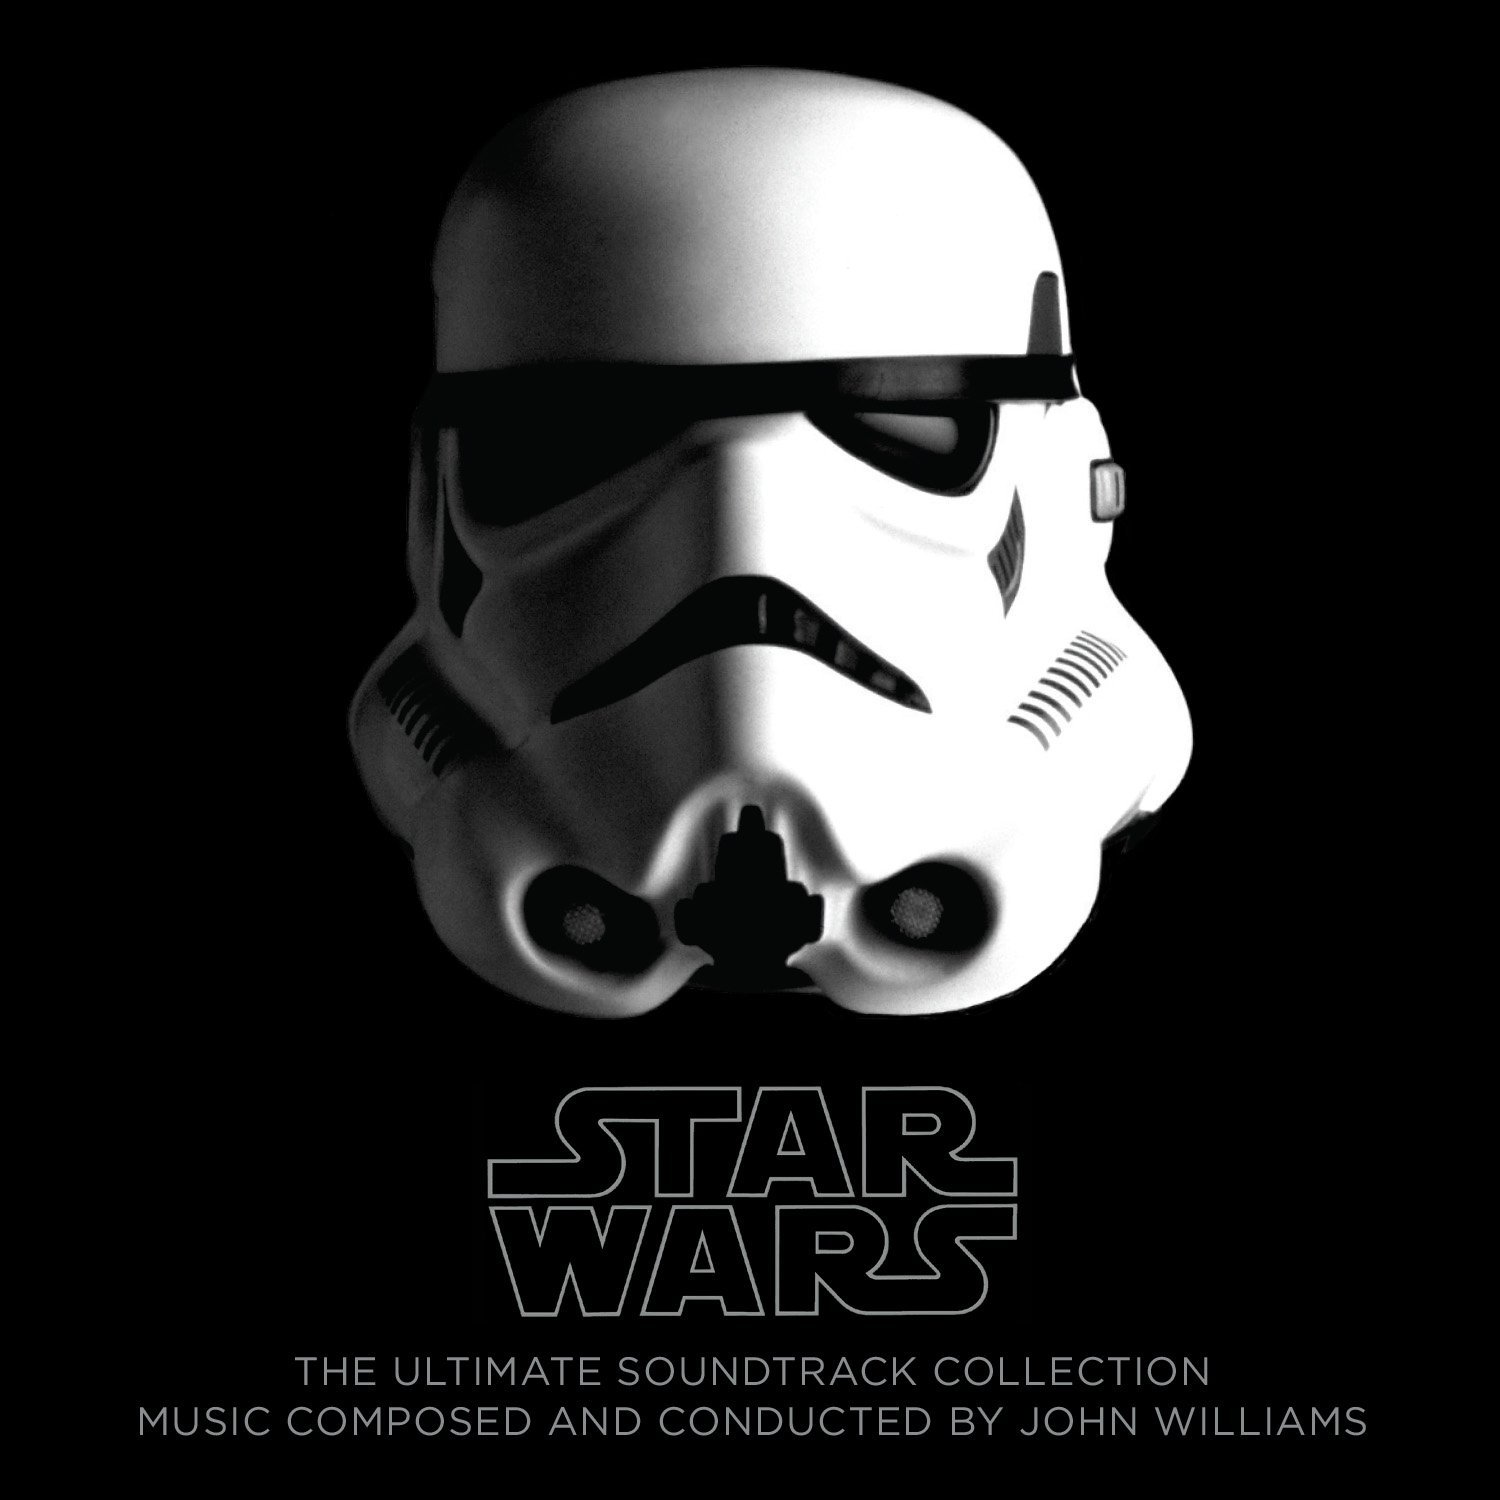 Star Wars: The Ultimate Soundtrack Edition